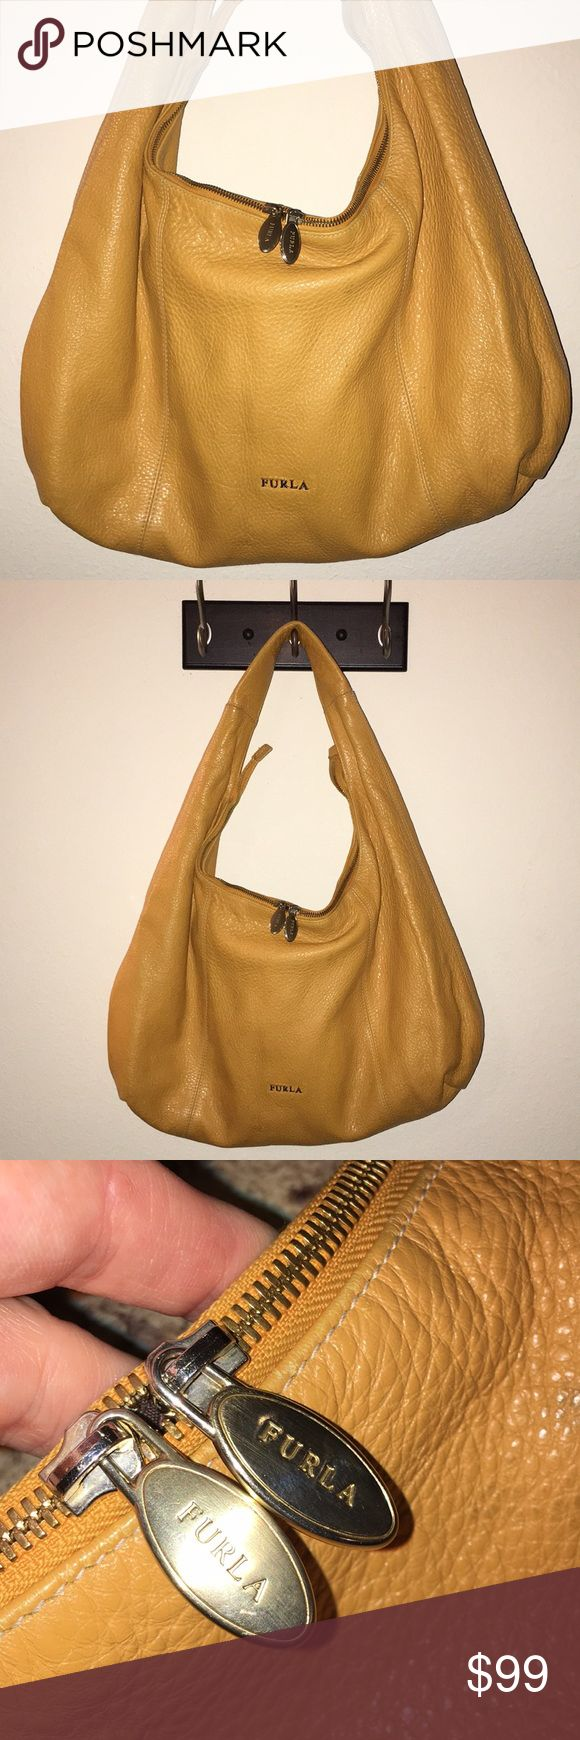 """FURLA Mustard Yellow designer Hobo Shoulder Bag This is a large FURLA Mustard Yellow designer Hobo Shoulder Bag in gently used condition! Clean inside and out! Top zip! Genuine Leather! Measures 19""""x12"""", I ship fast! Happy poshing friends! Furla Bags Hobos"""